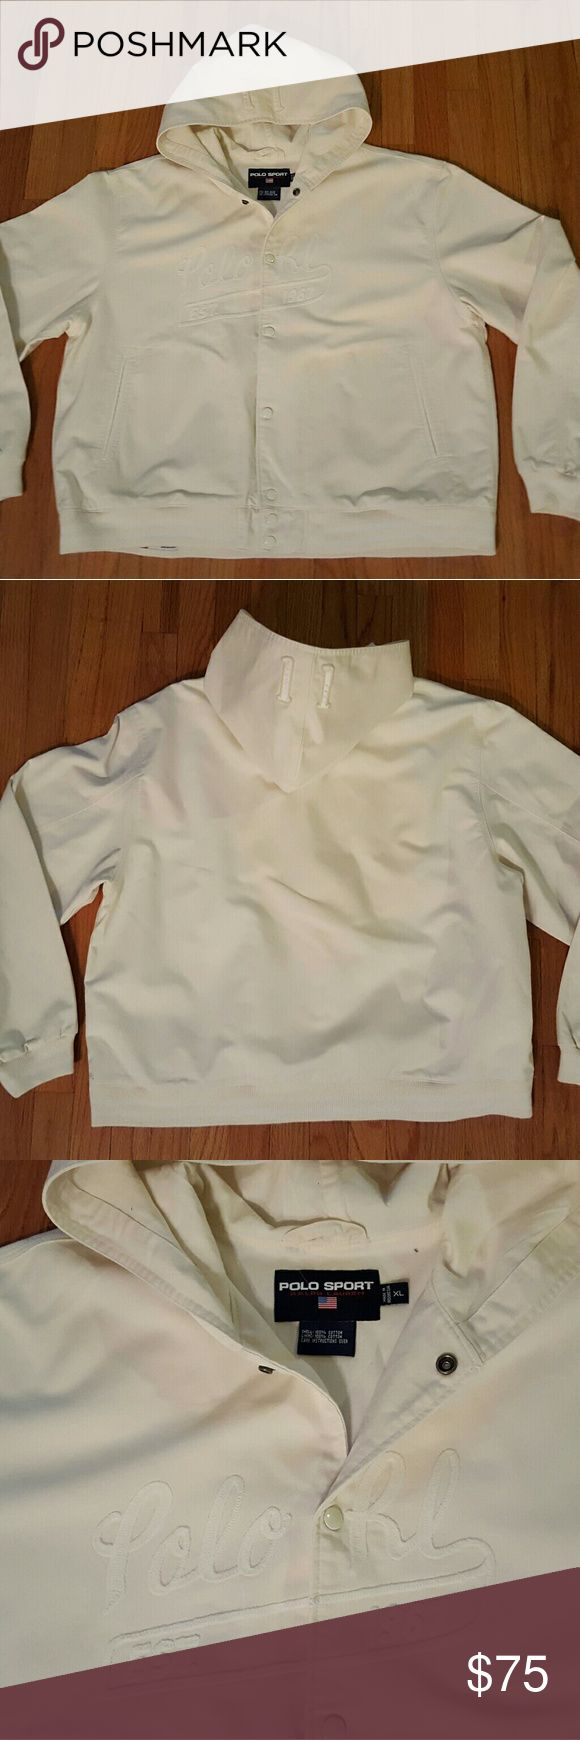 "Vintage Polo Sport Ralph Lauren Hooded Jacket Vintage Polo Sport Ralph Lauren Hooded Jacket. Size XL. Ivory color. Button up front. ""Polo RL"" across front. ""11"" on hood. Perfect used condition. No tears, stains, or smells. Polo Sport Ralph Lauren Jackets & Coats"